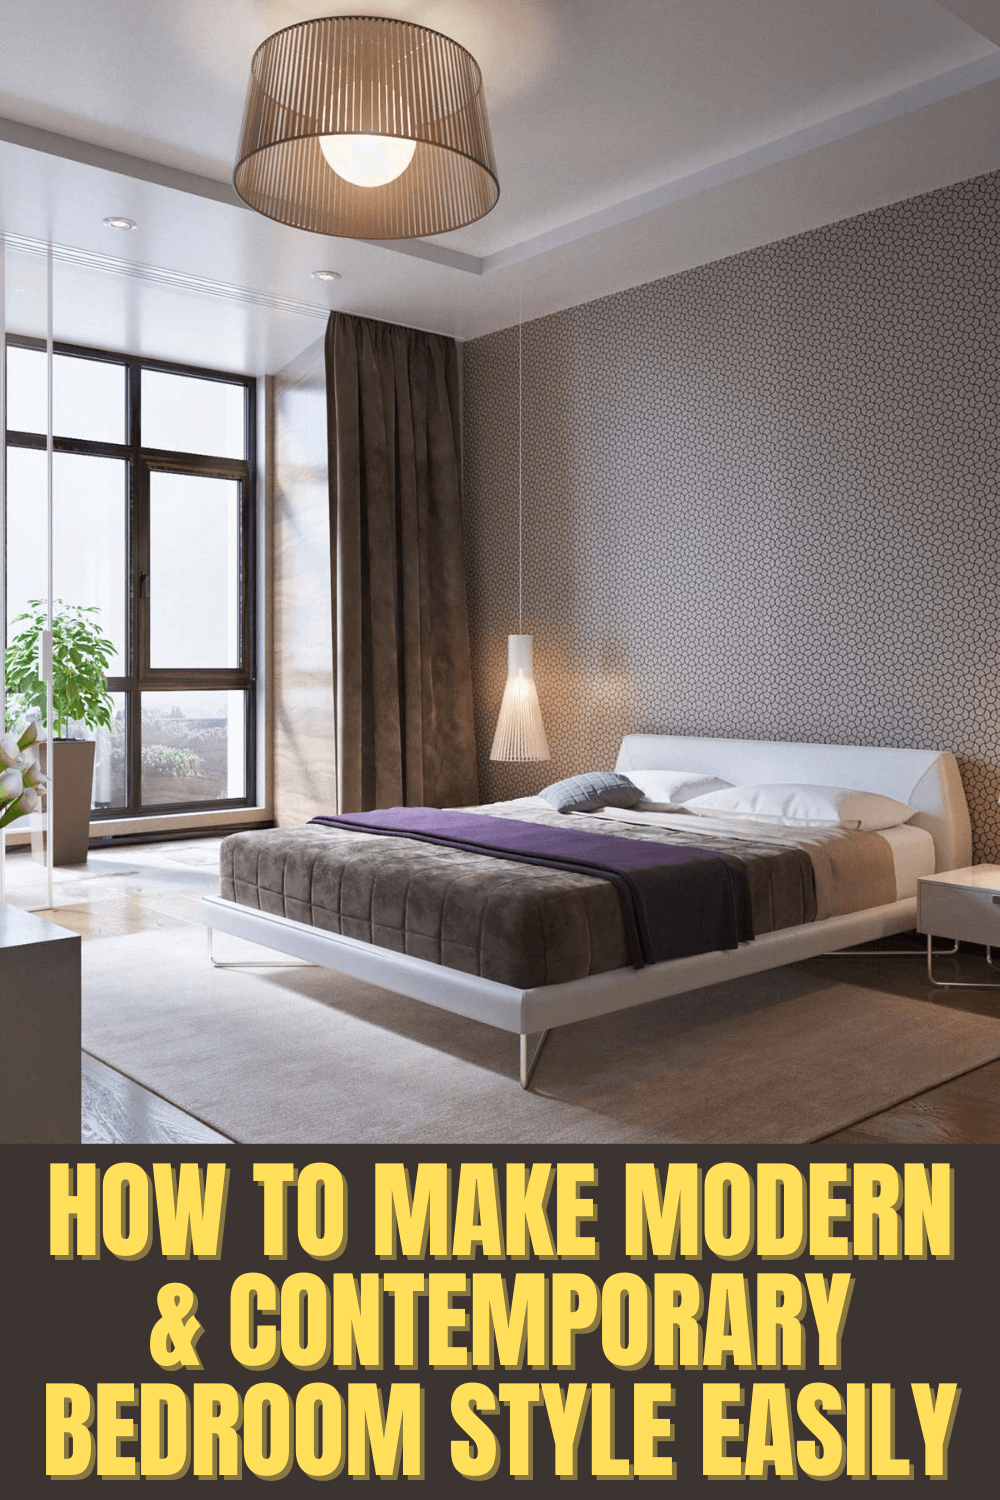 HOW TO MAKE MODERN & CONTEMPORARY BEDROOM STYLE EASILY